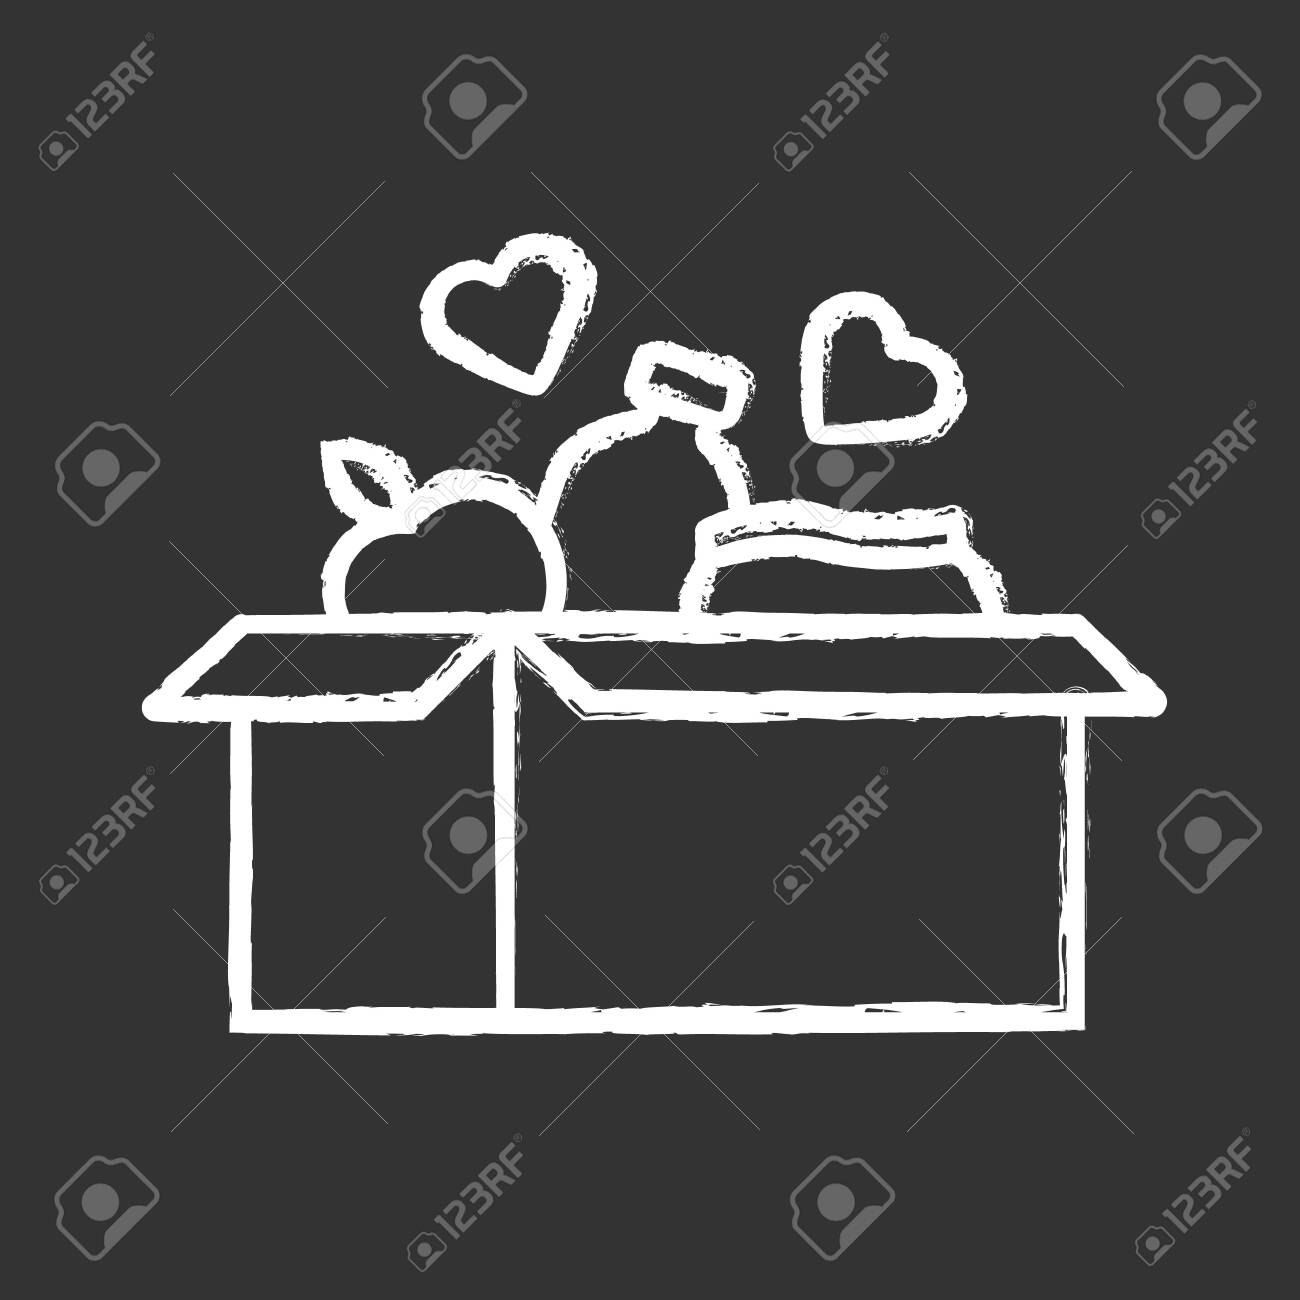 Food donations chalk icon. Charity food collection. Box with meal, hearts. Humanitarian volunteer activity. Helping people in need. Hunger support program. Isolated vector chalkboard illustration - 129559056